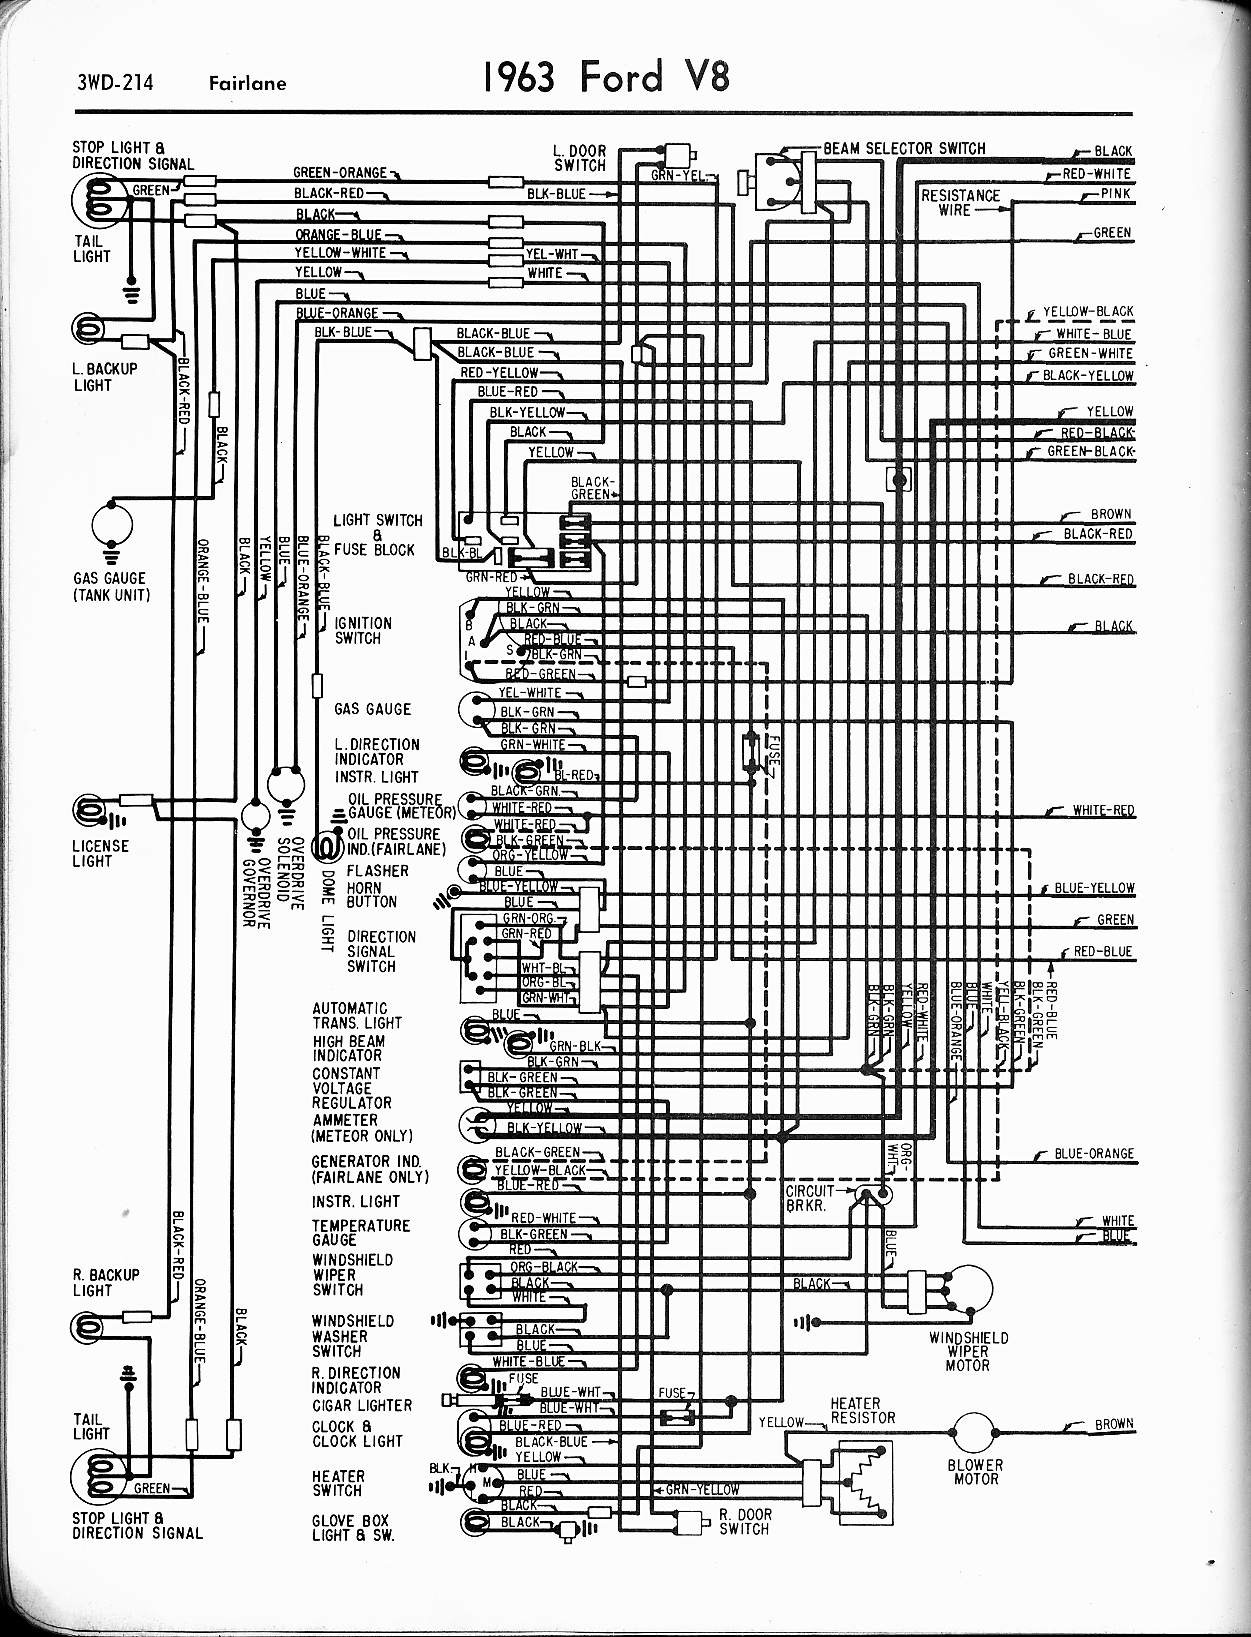 1963 Ford F650 Wiring Diagrams Electrical Schematic Crankshaft Porsche Cayenne Diagram